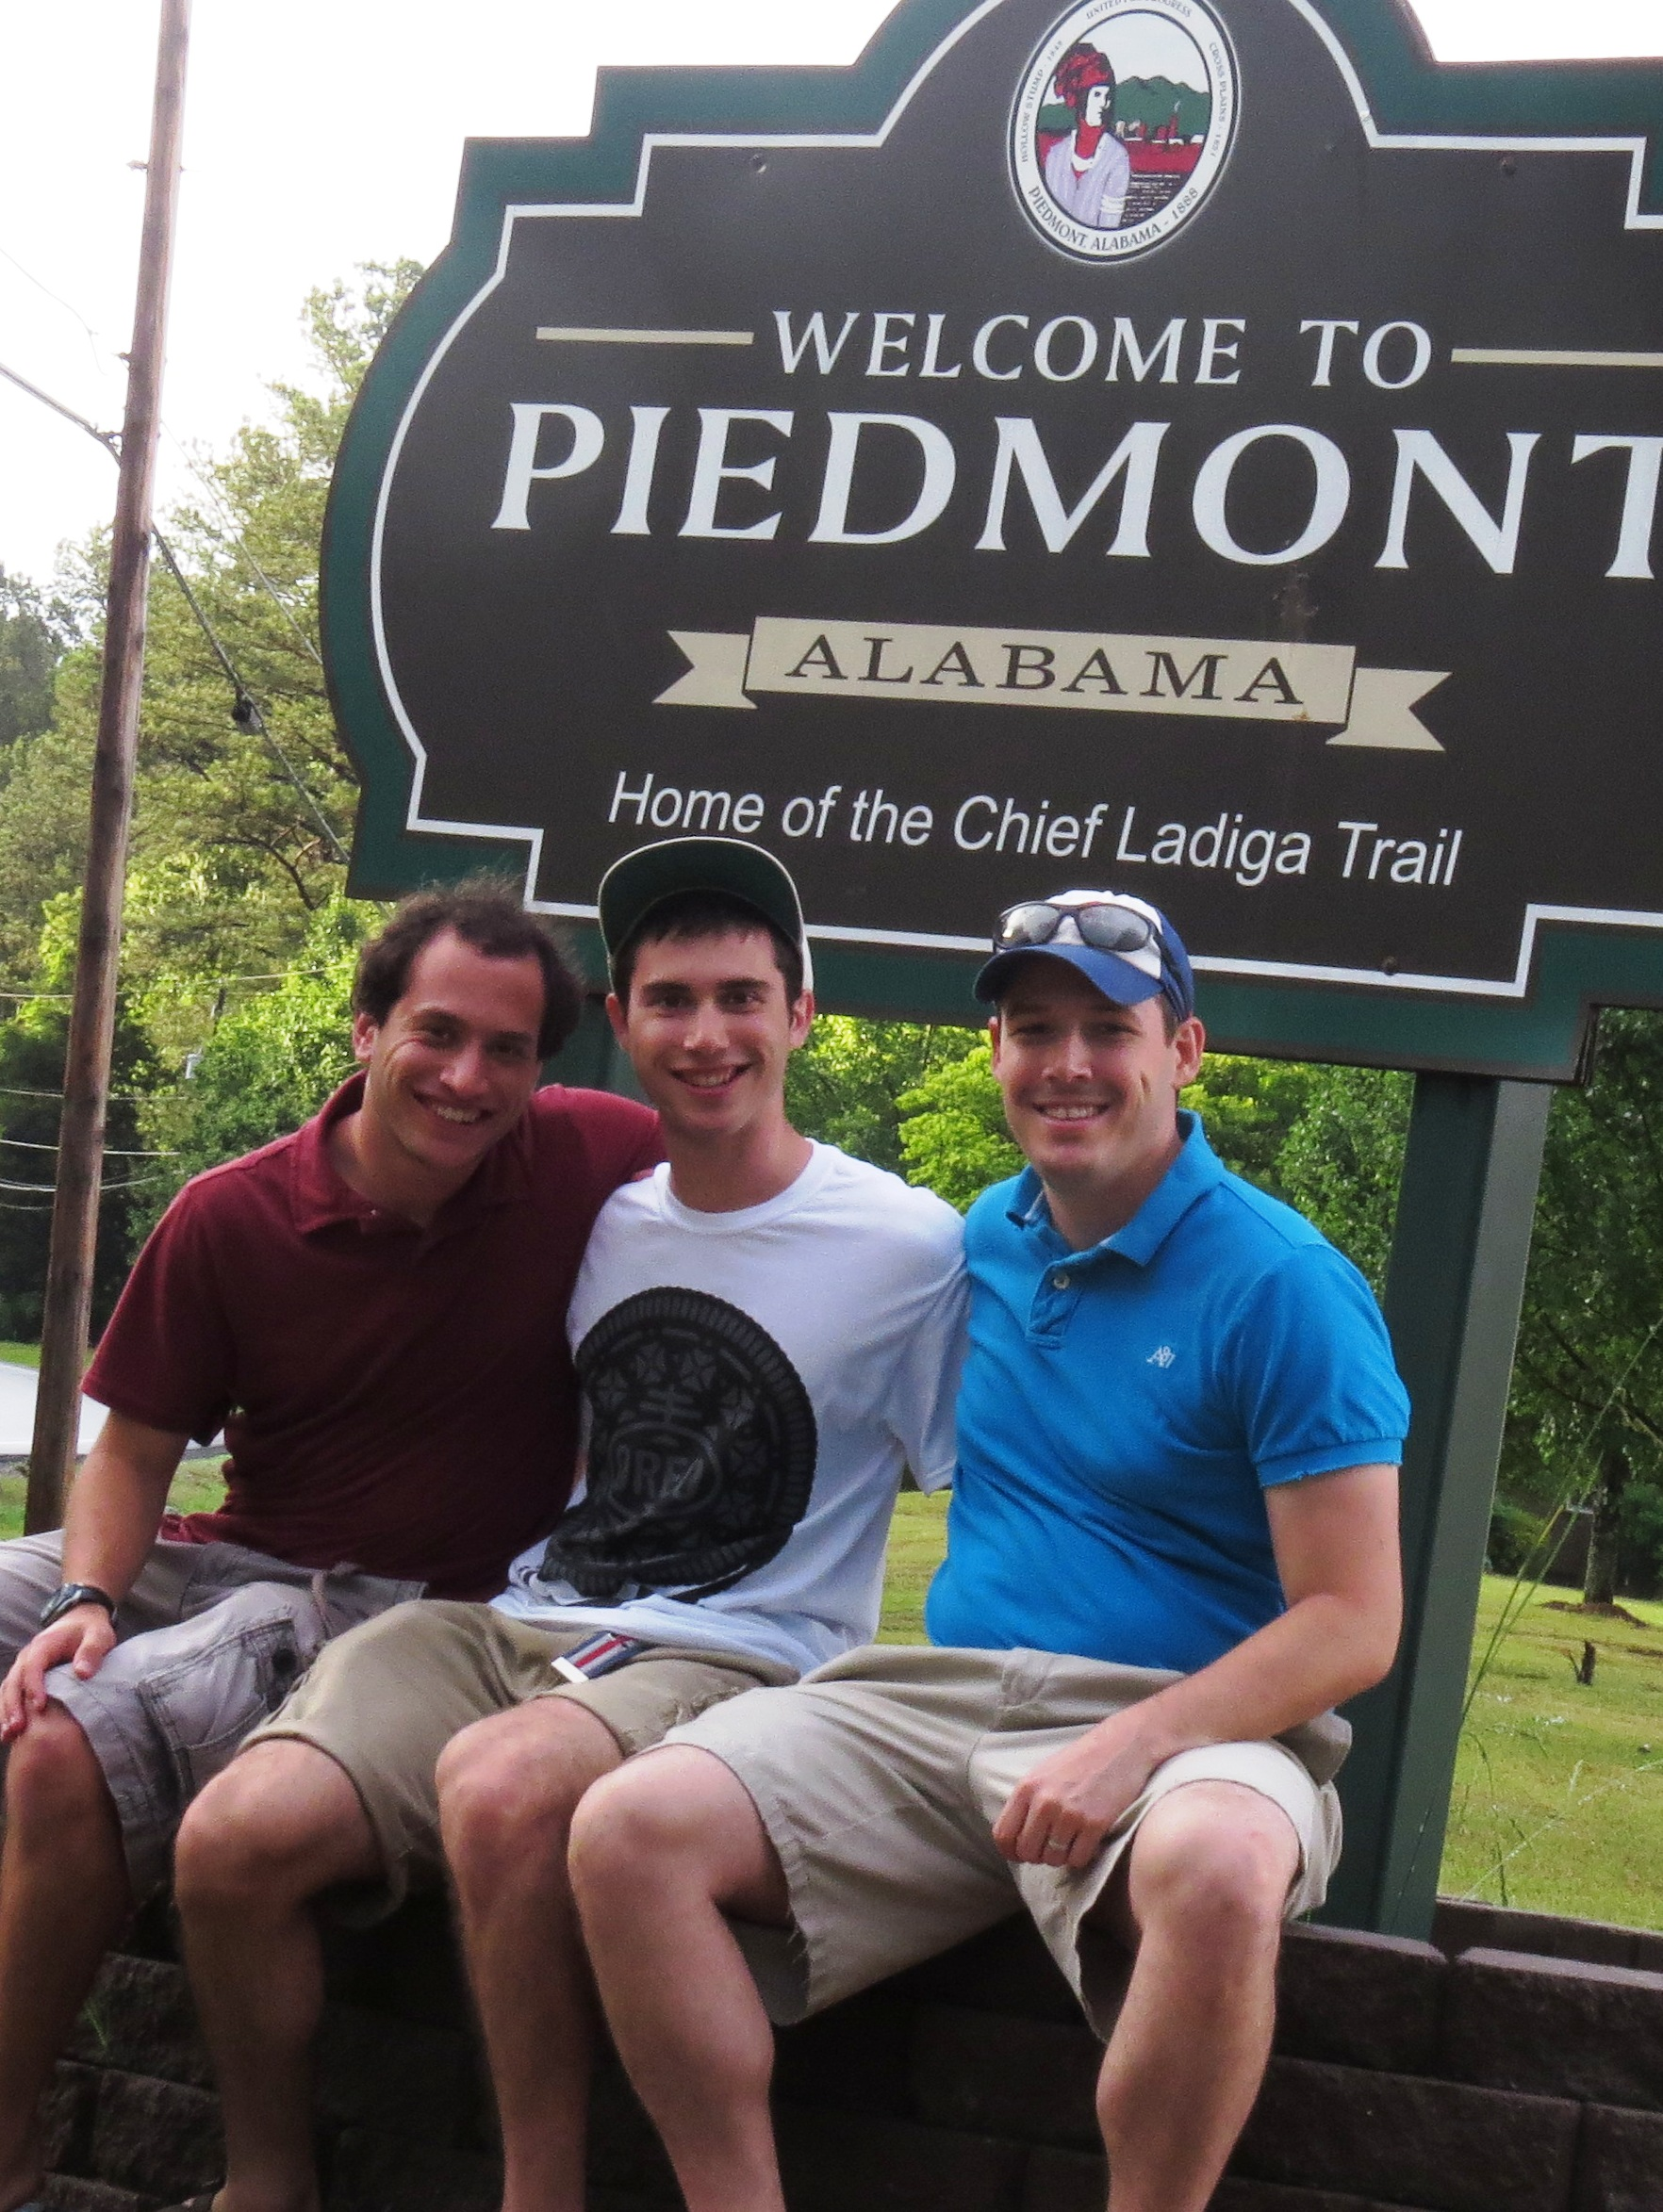 Gabe, Brother and Cousin in front of sign